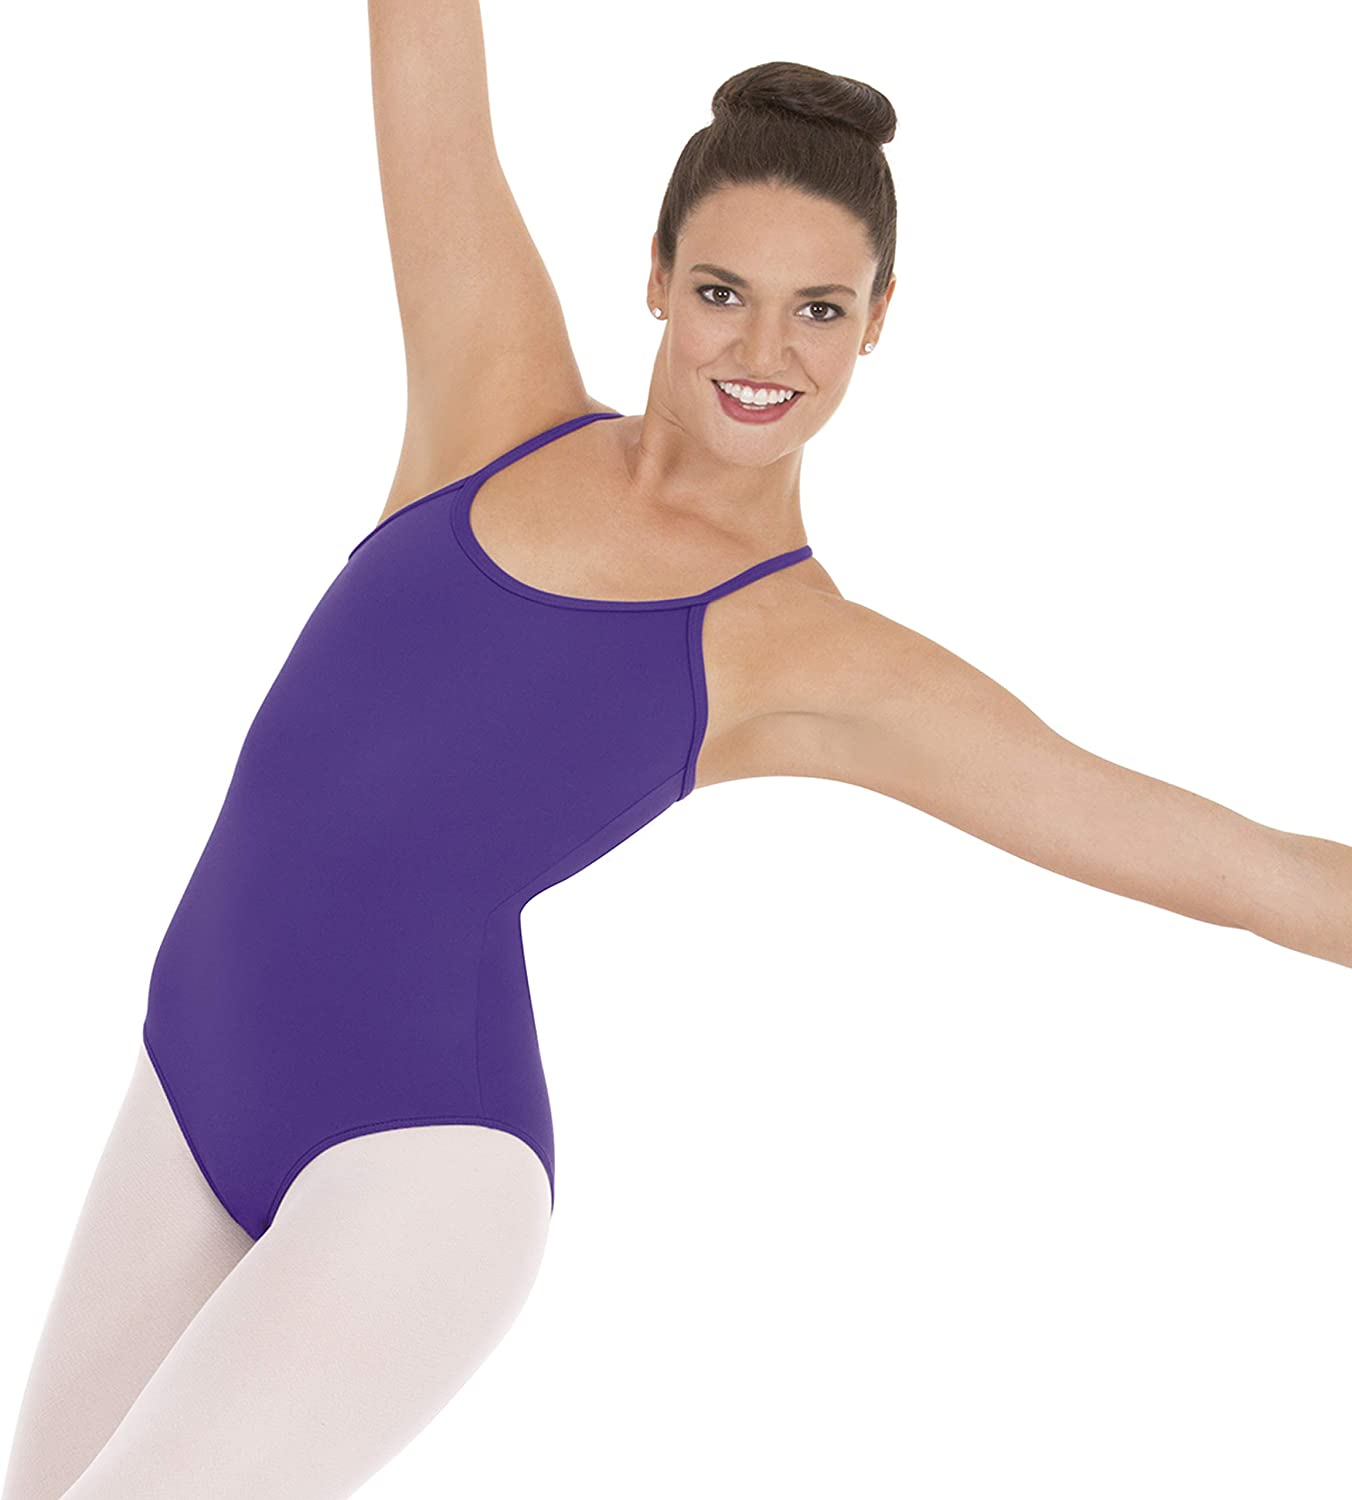 44819 Eurotard Womens Adjustable Camisole Leotard with Tactel Microfiber